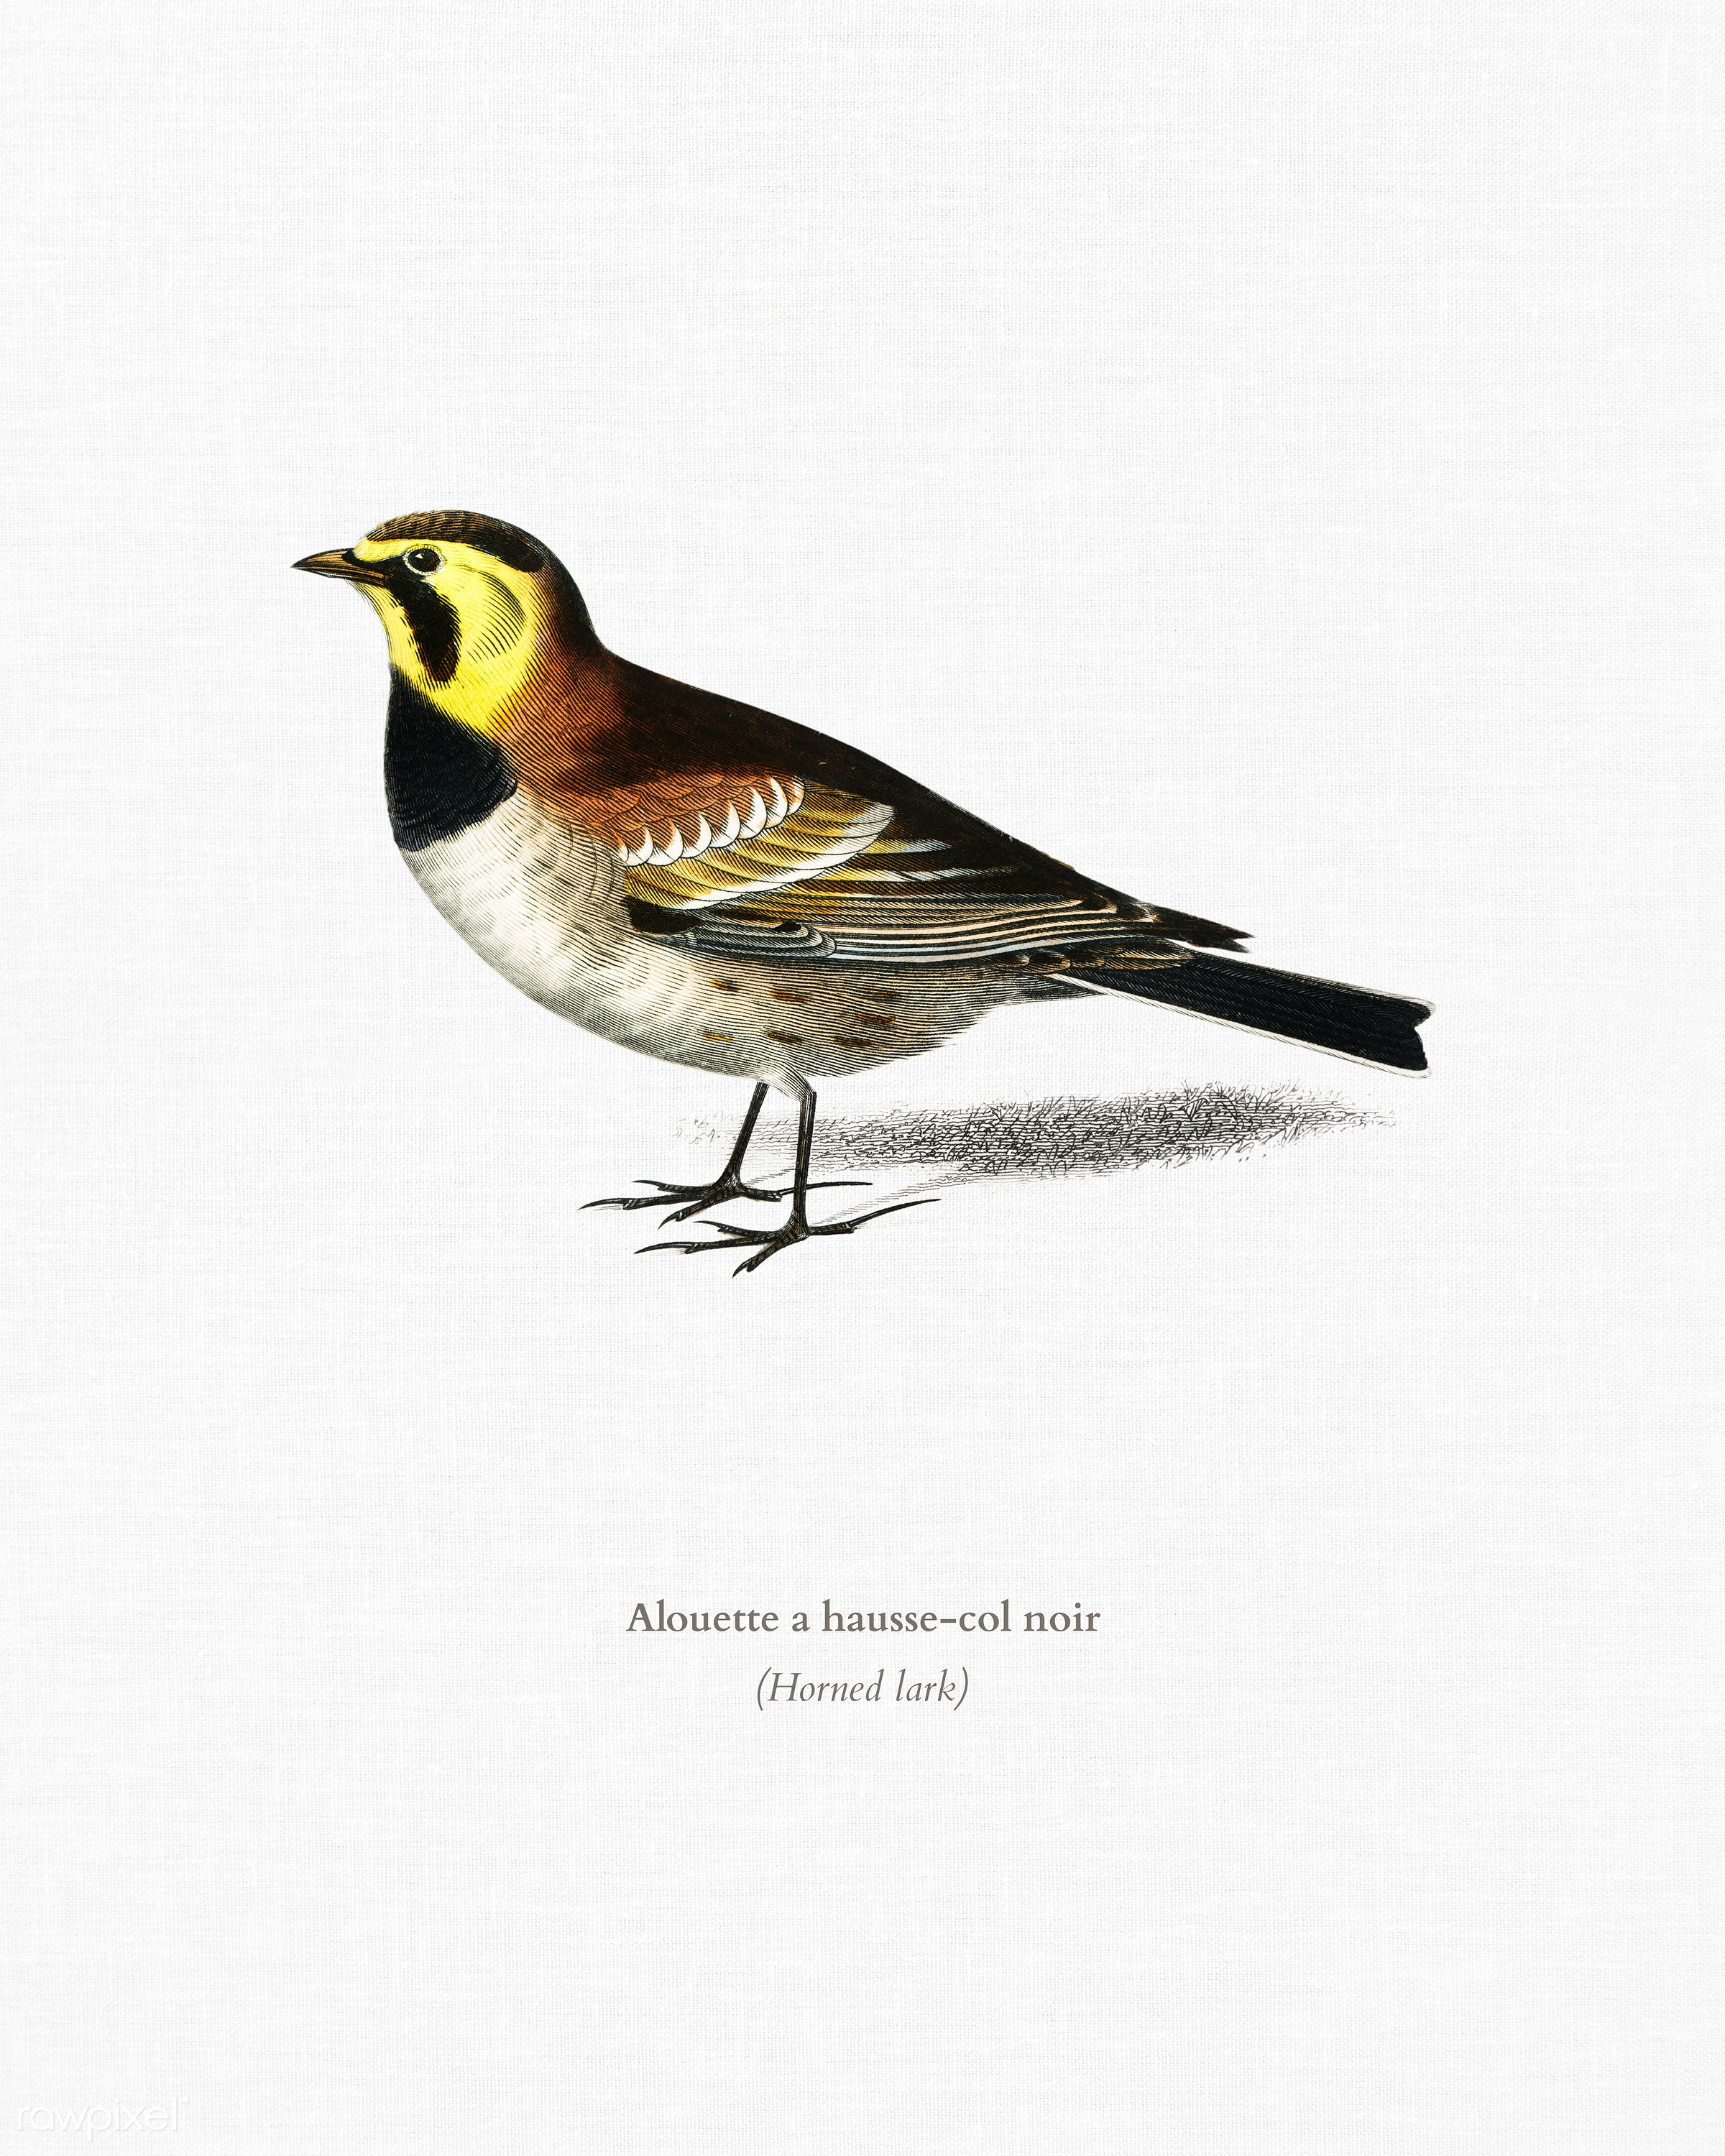 Horned lark (Alouette a hausse-col noir) illustrated by Charles Dessalines D' Orbigny (1806-1876). Digitally enhanced...